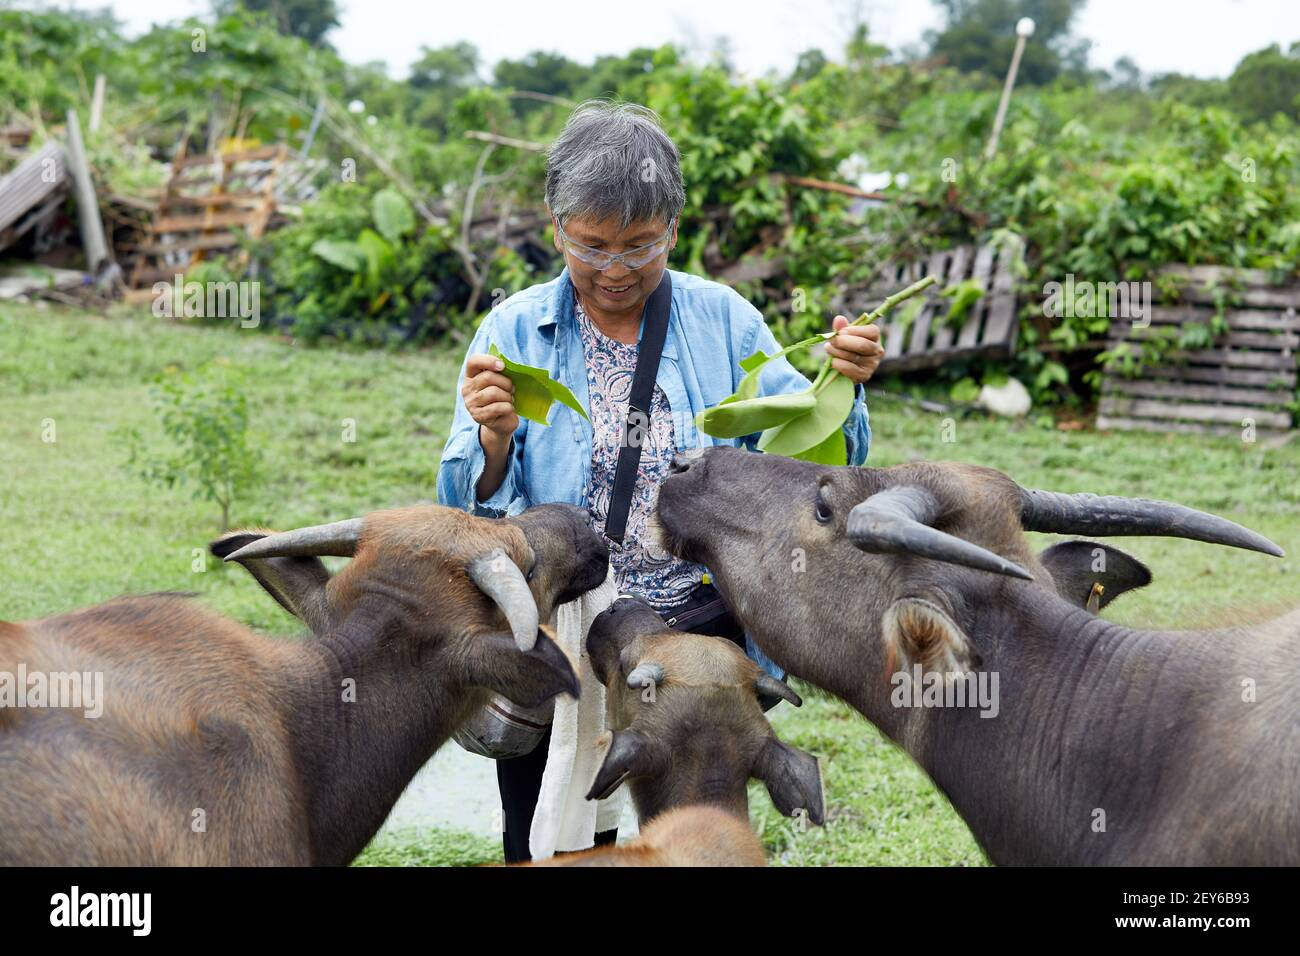 Jean Leung Siu-wah, known locally as the buffalo mother, or buffalo whisperer has been looking after the welfare of the animals since 2008.  Photo by Stock Photo